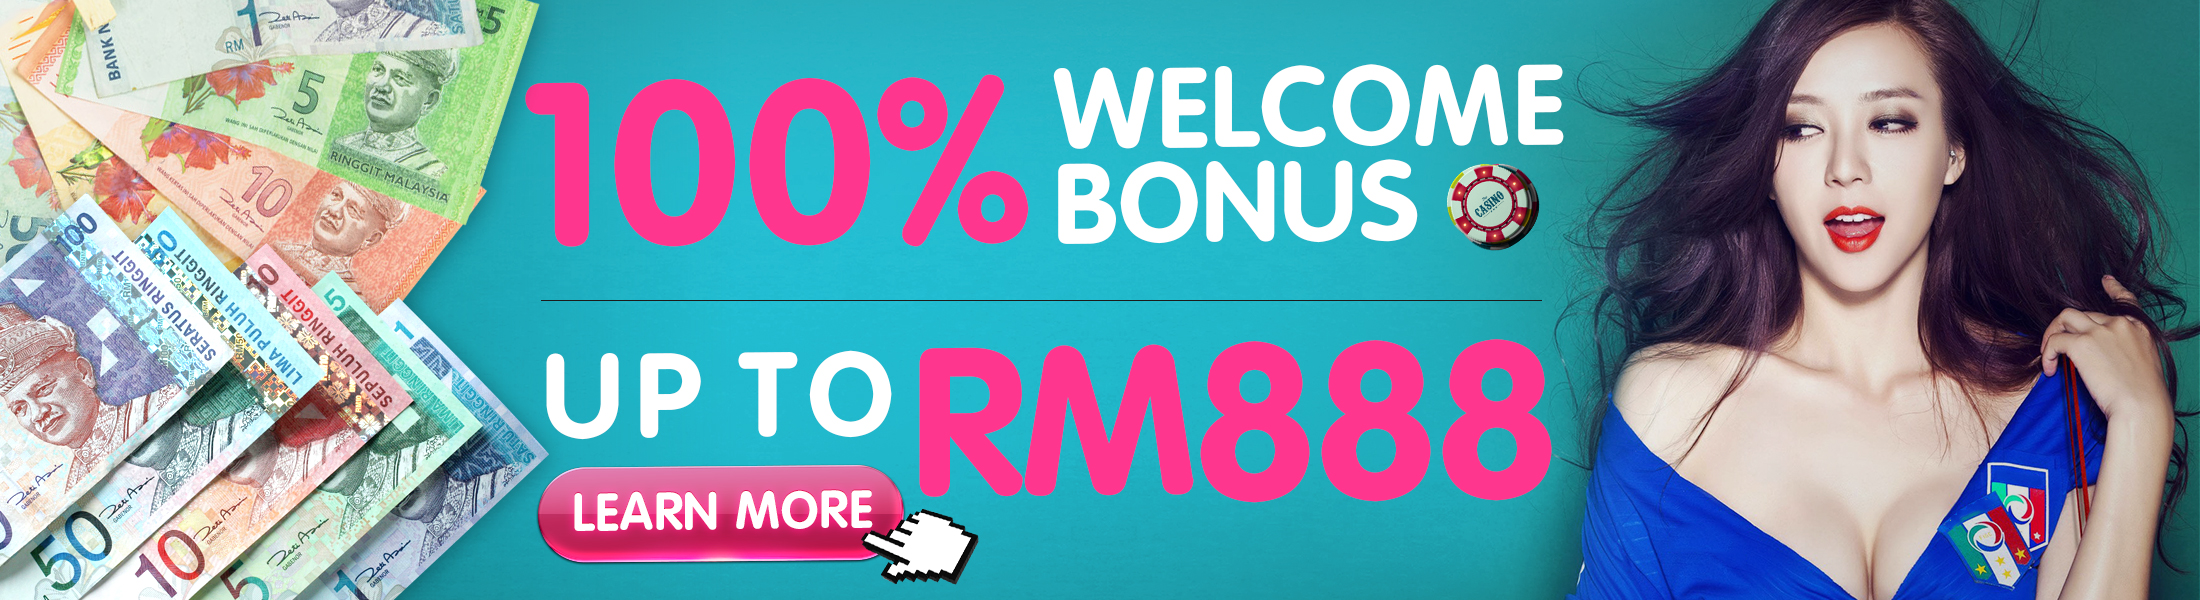 sky3888 Login Give You the Best Welcome Bonus